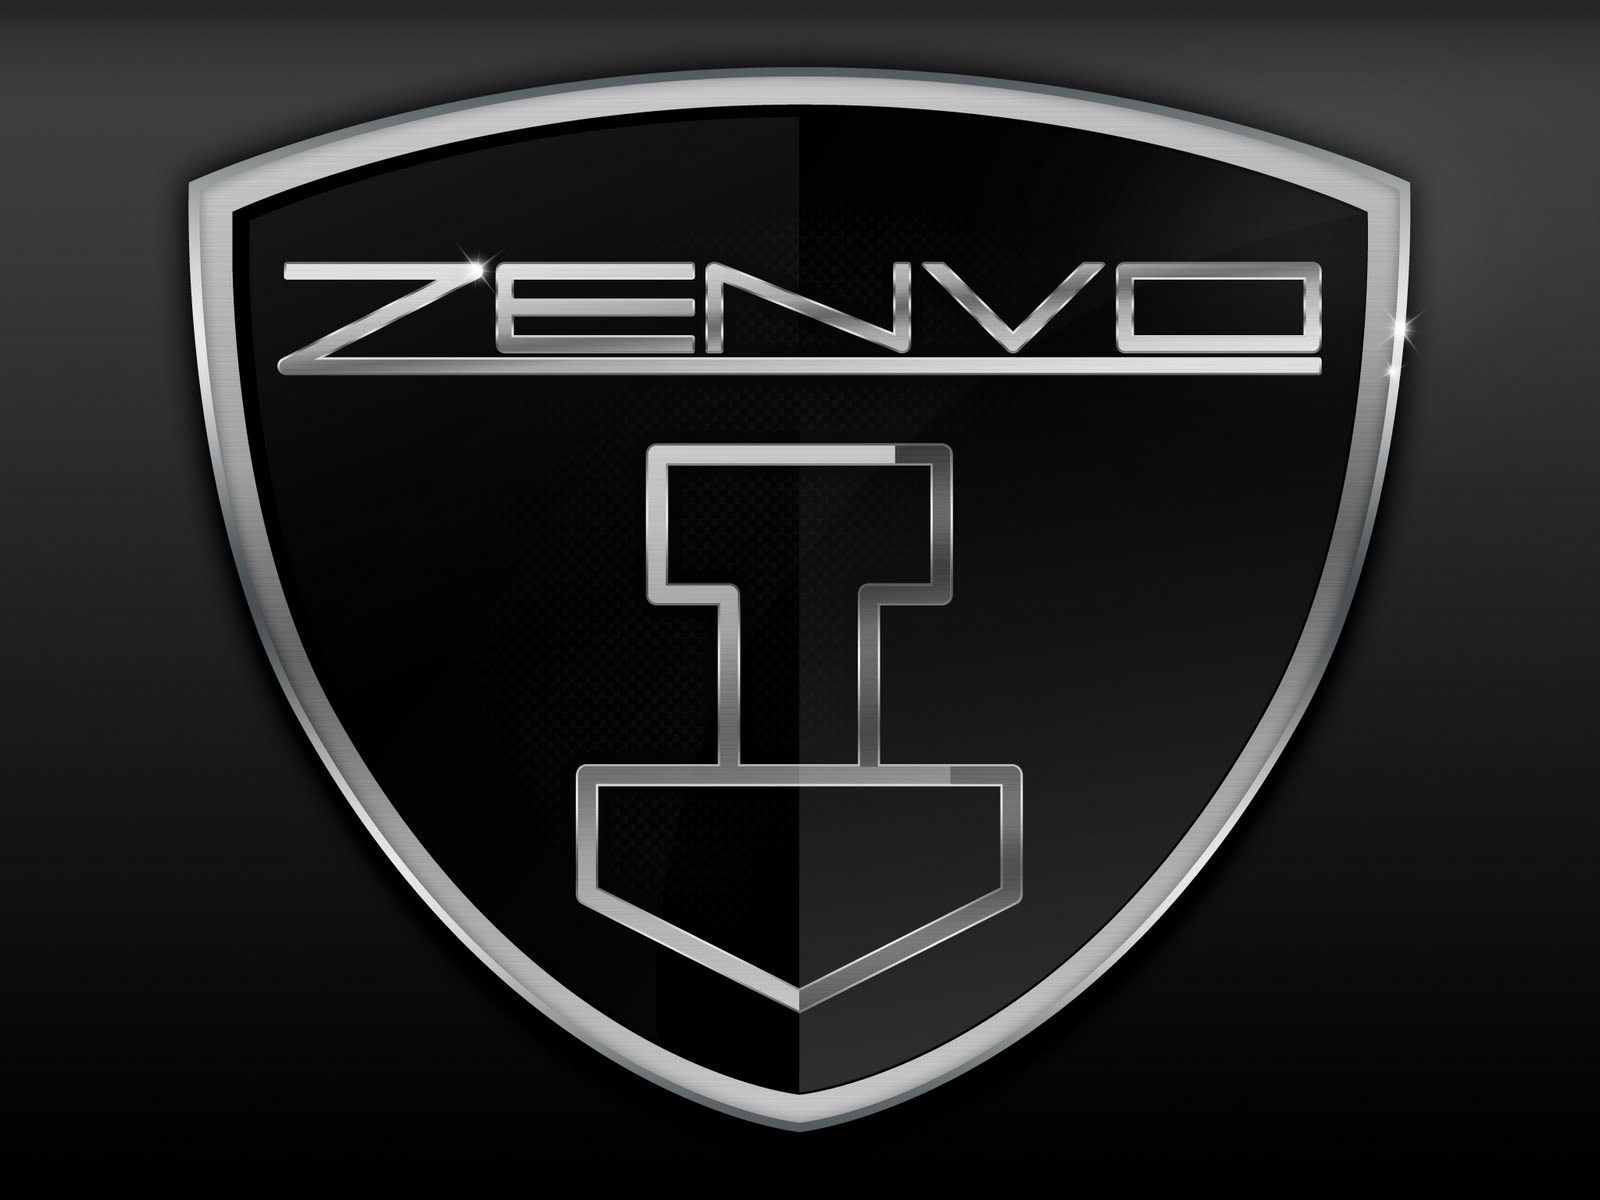 1600x1200 Px Free Download Pictures Of Zenvo St1 By Hall Turner For